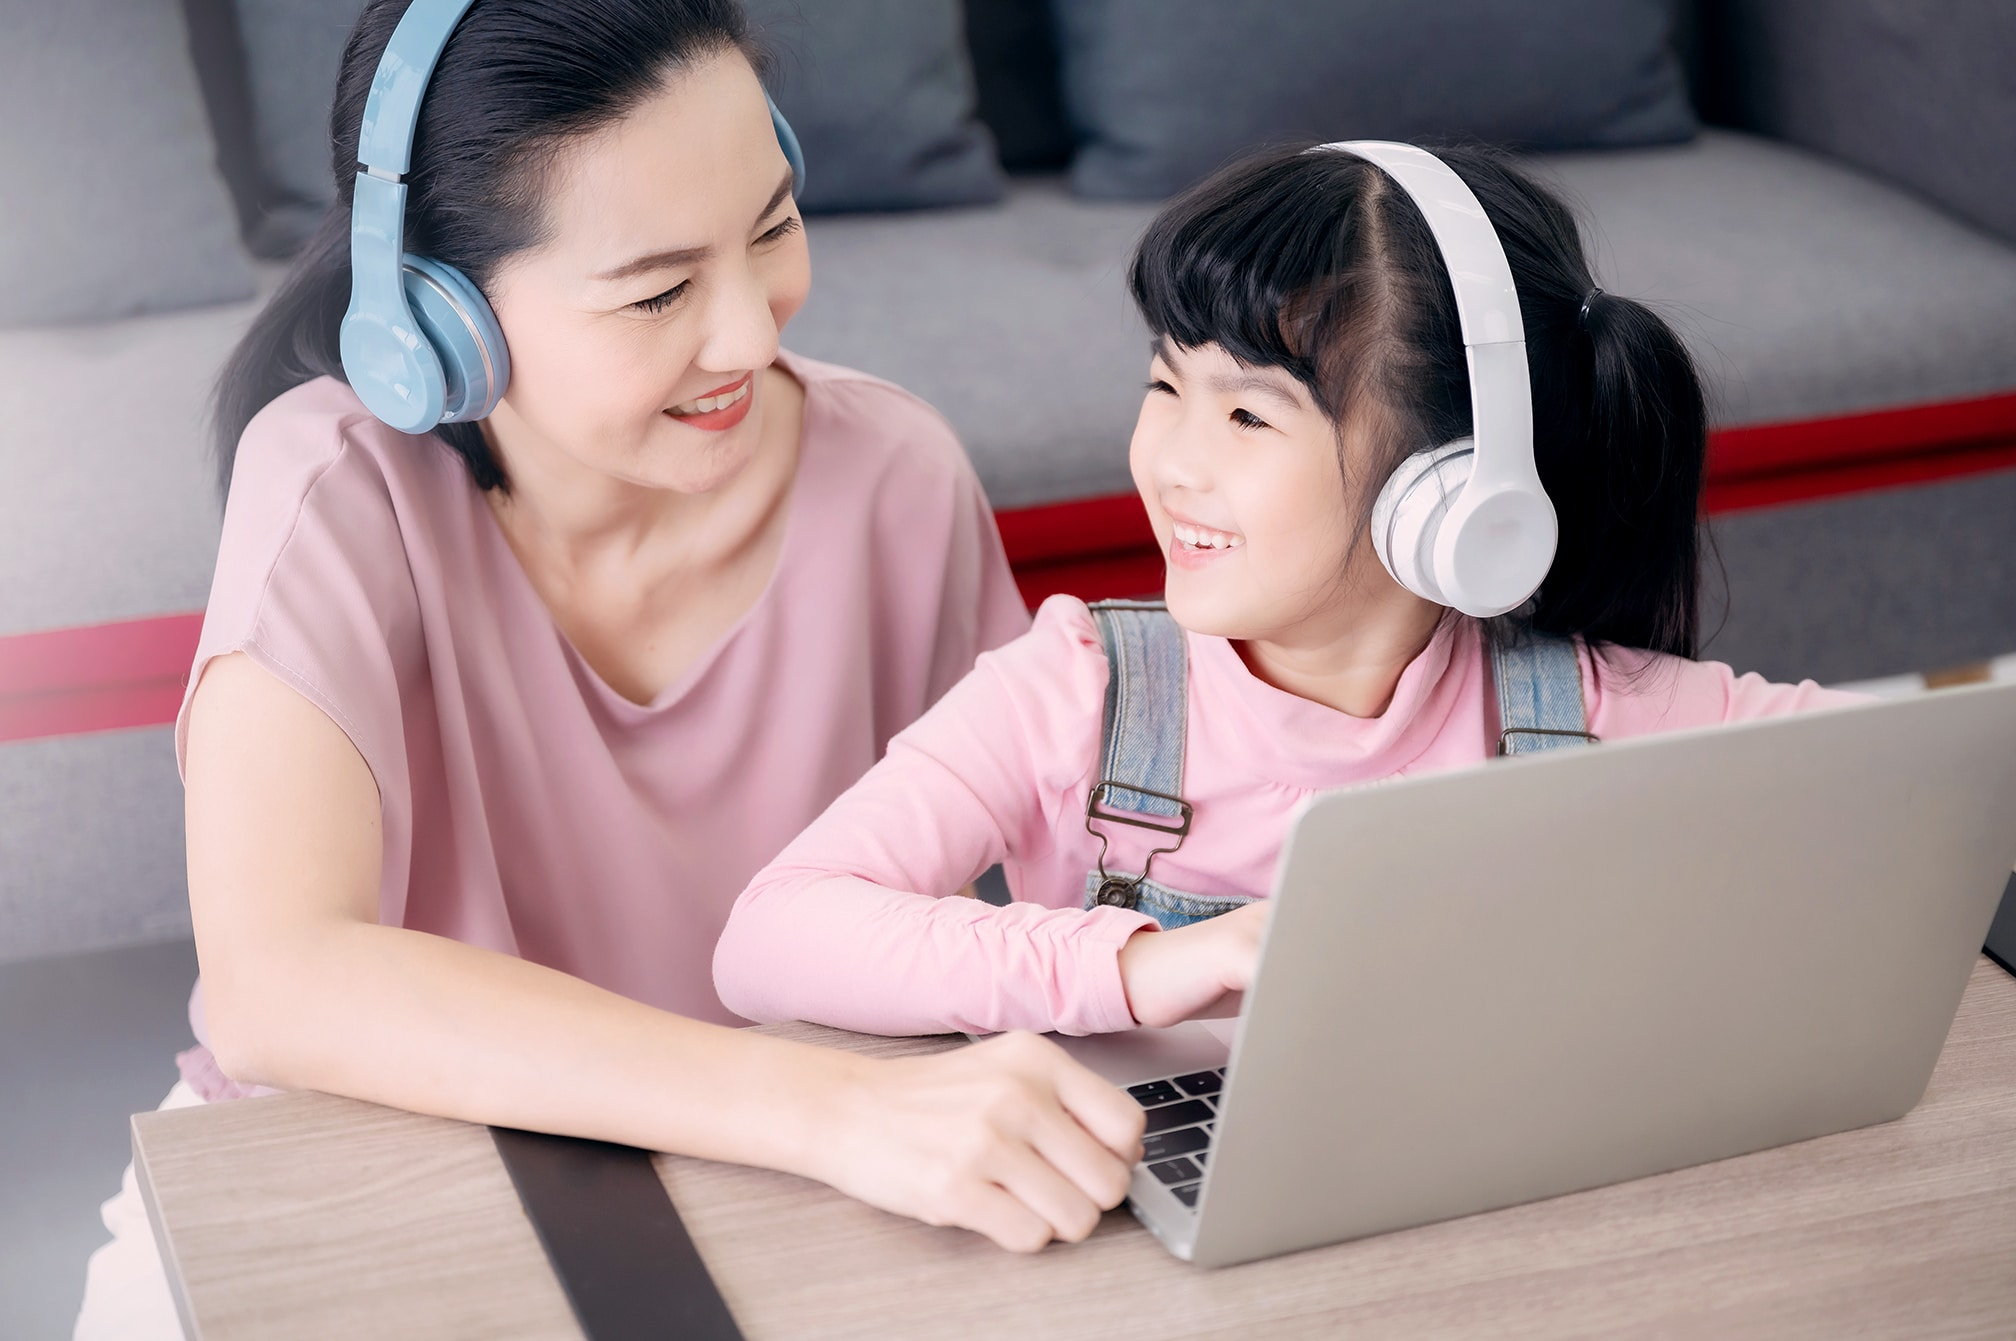 It is helpful when parents be their child's learning companion as their child learns Chinese